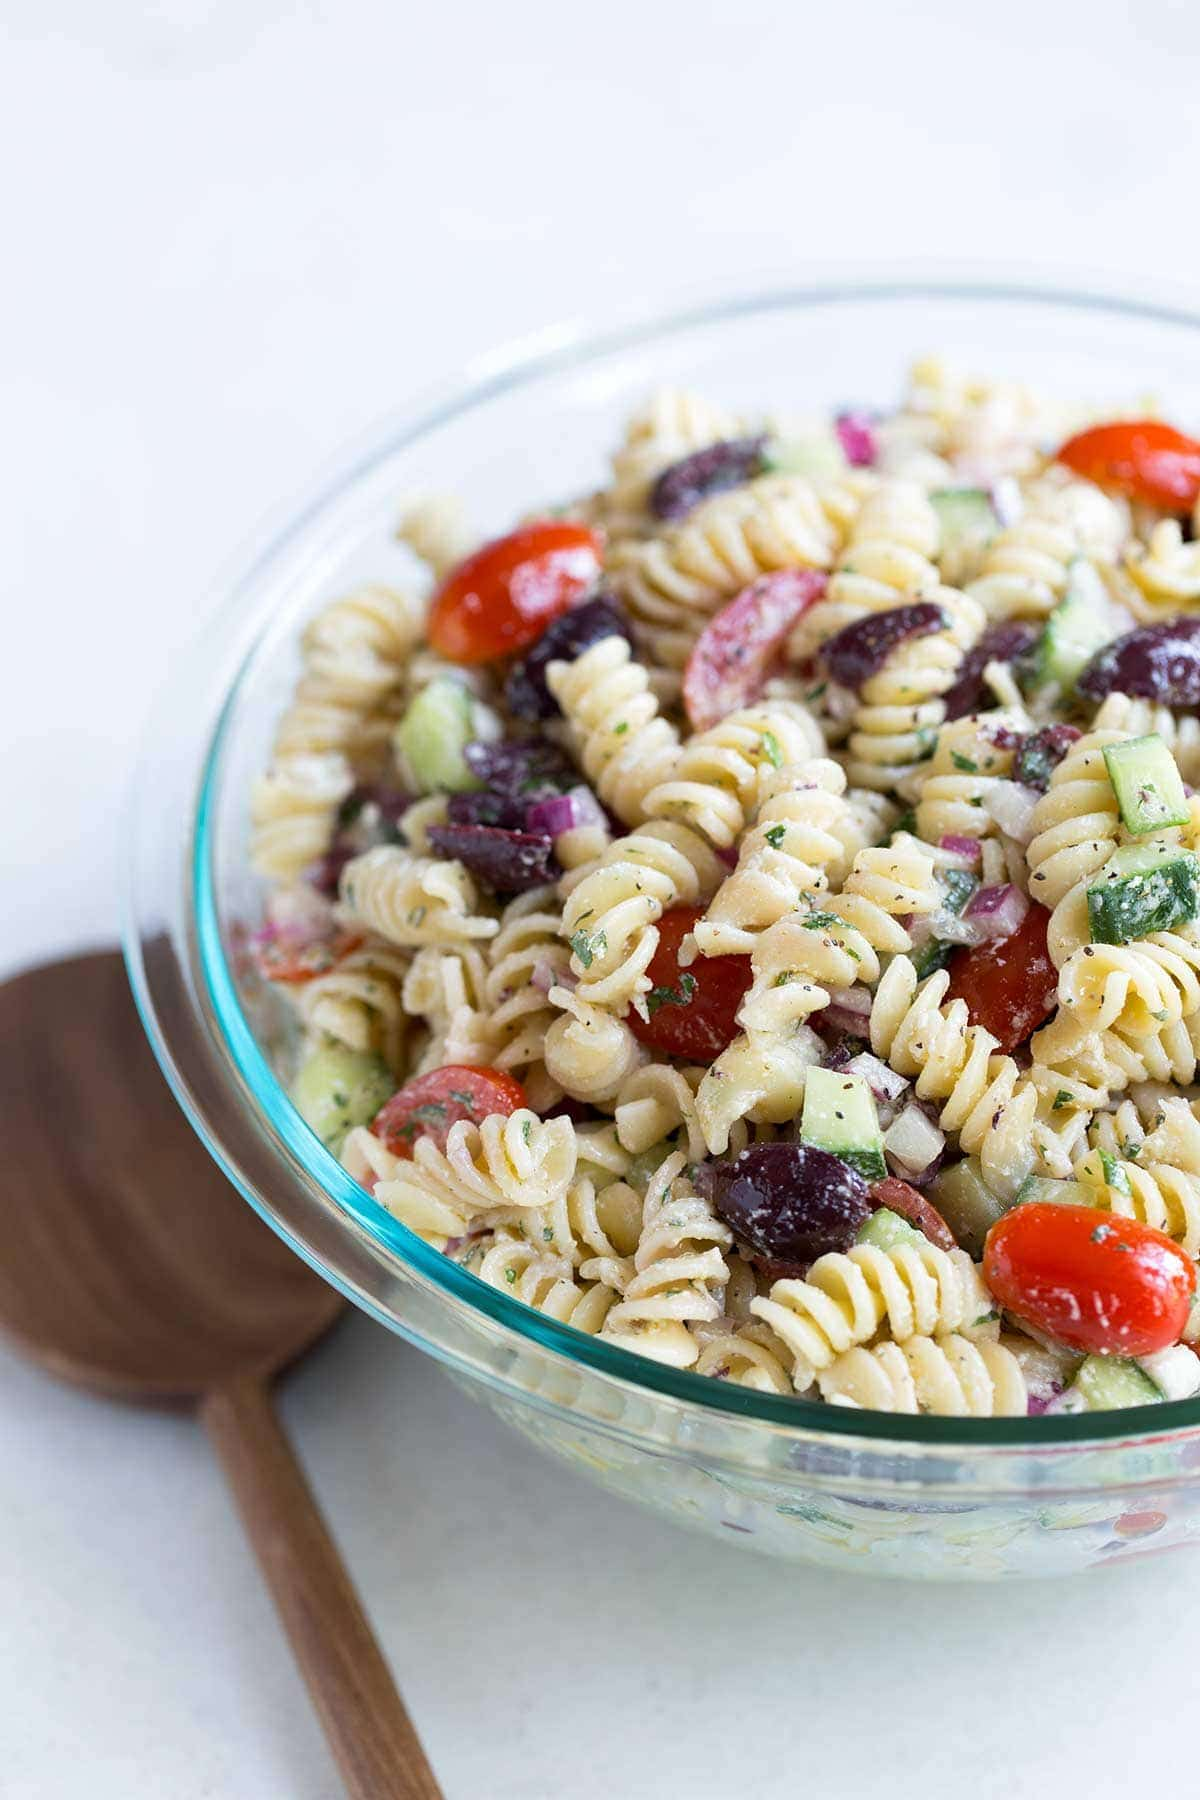 A close up shot of Greek pasta salad in a bowl, next to a wood spoon.